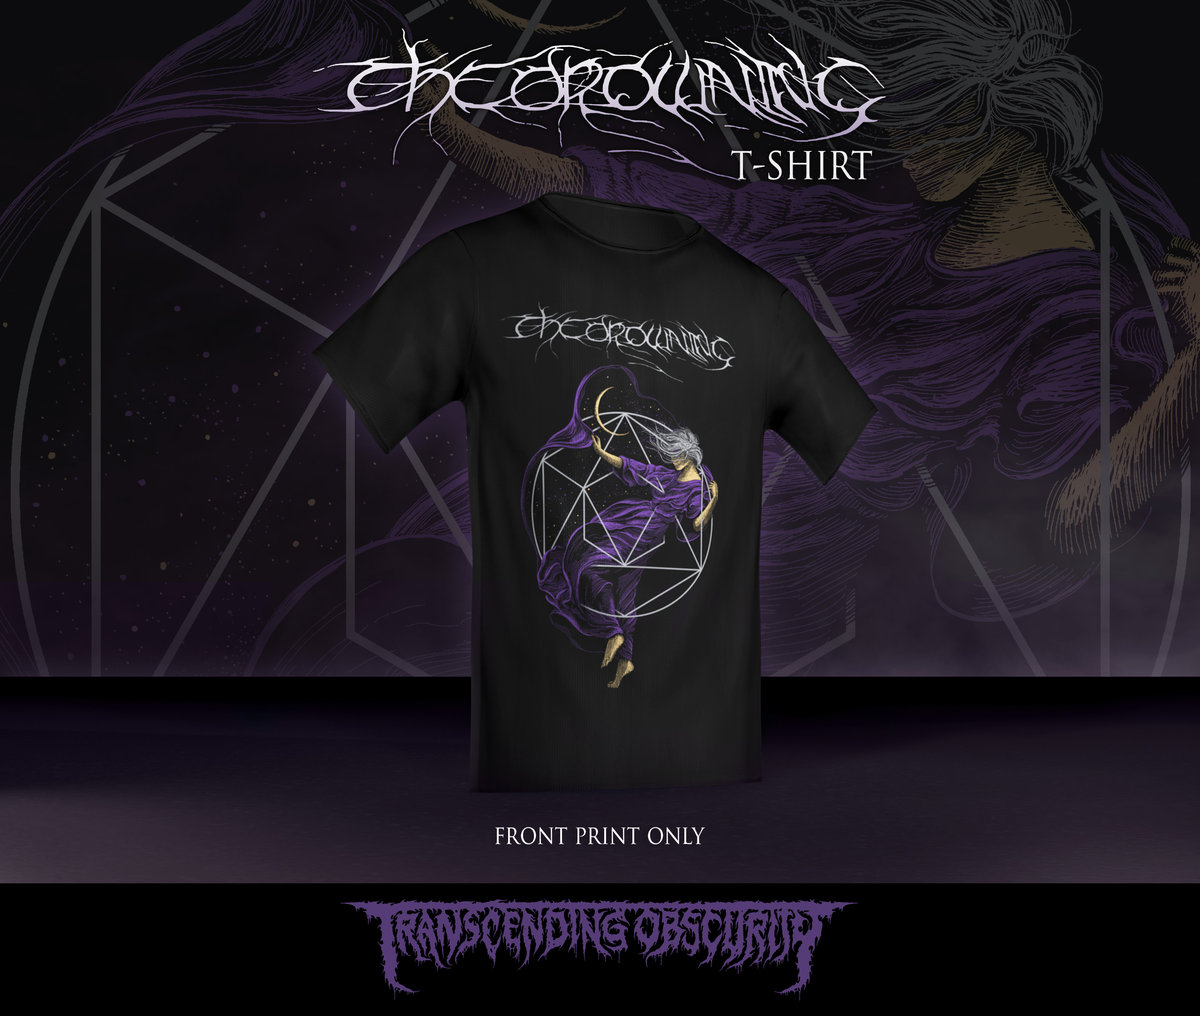 THE DROWNING Official T-shirt (Limited to 30)